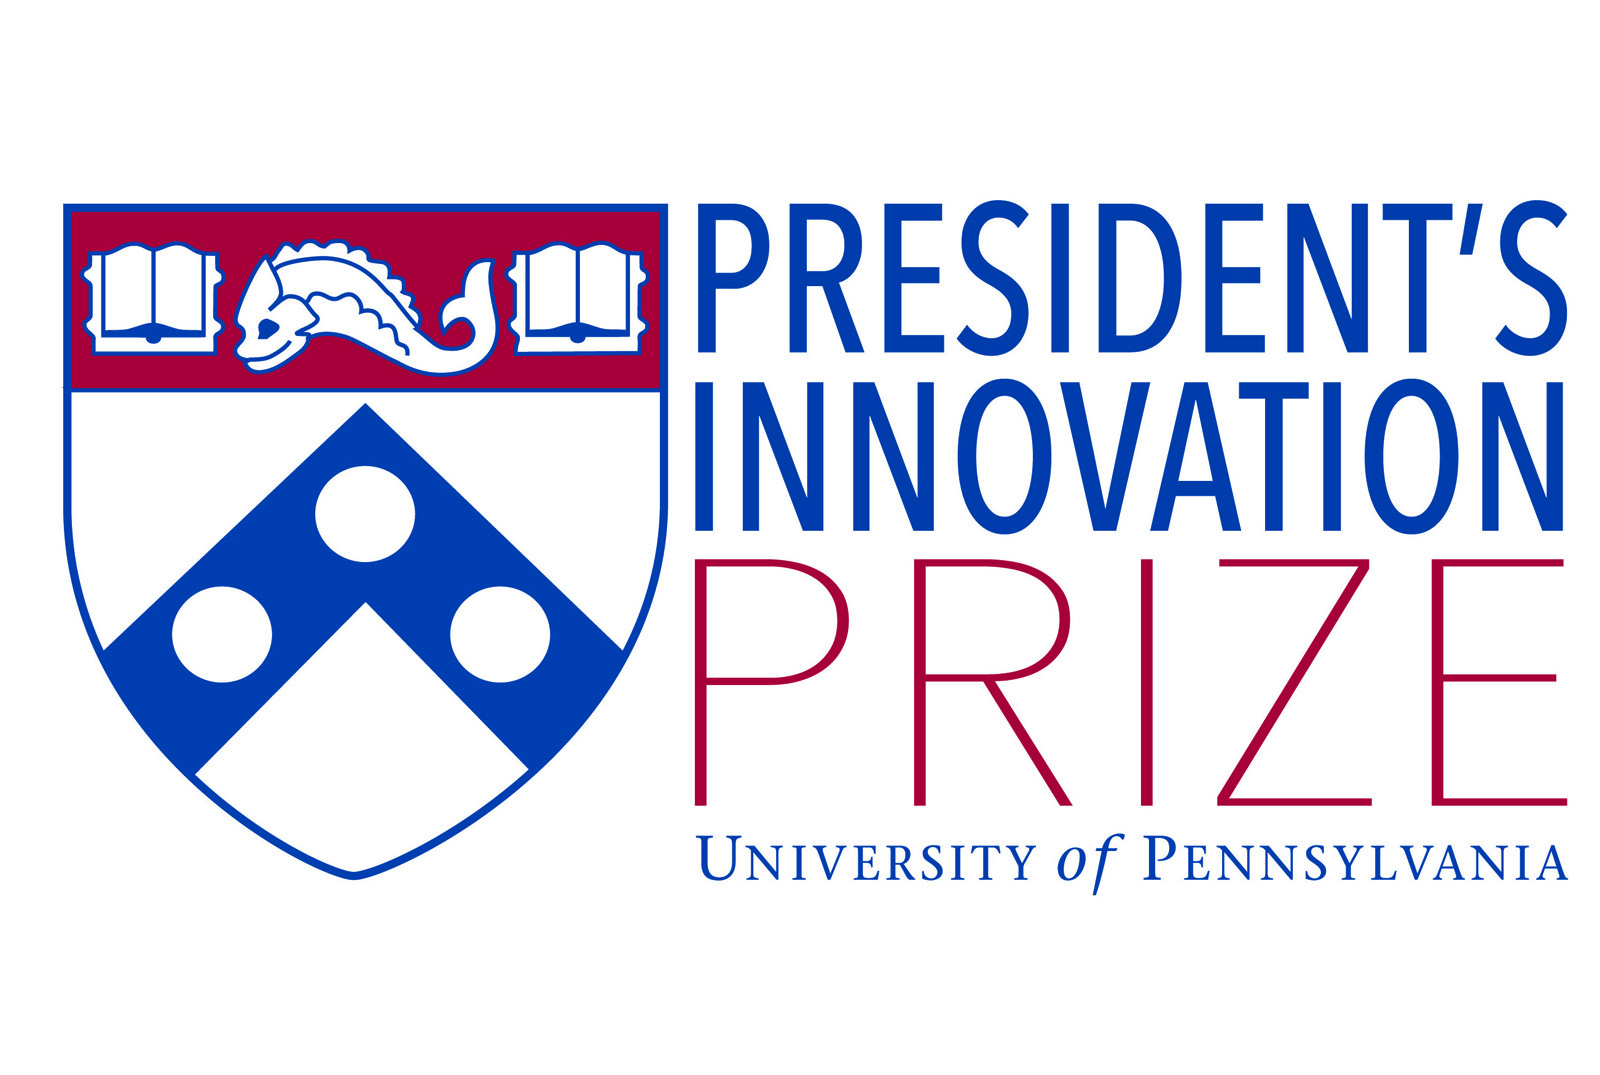 President's Innovation Prize logo